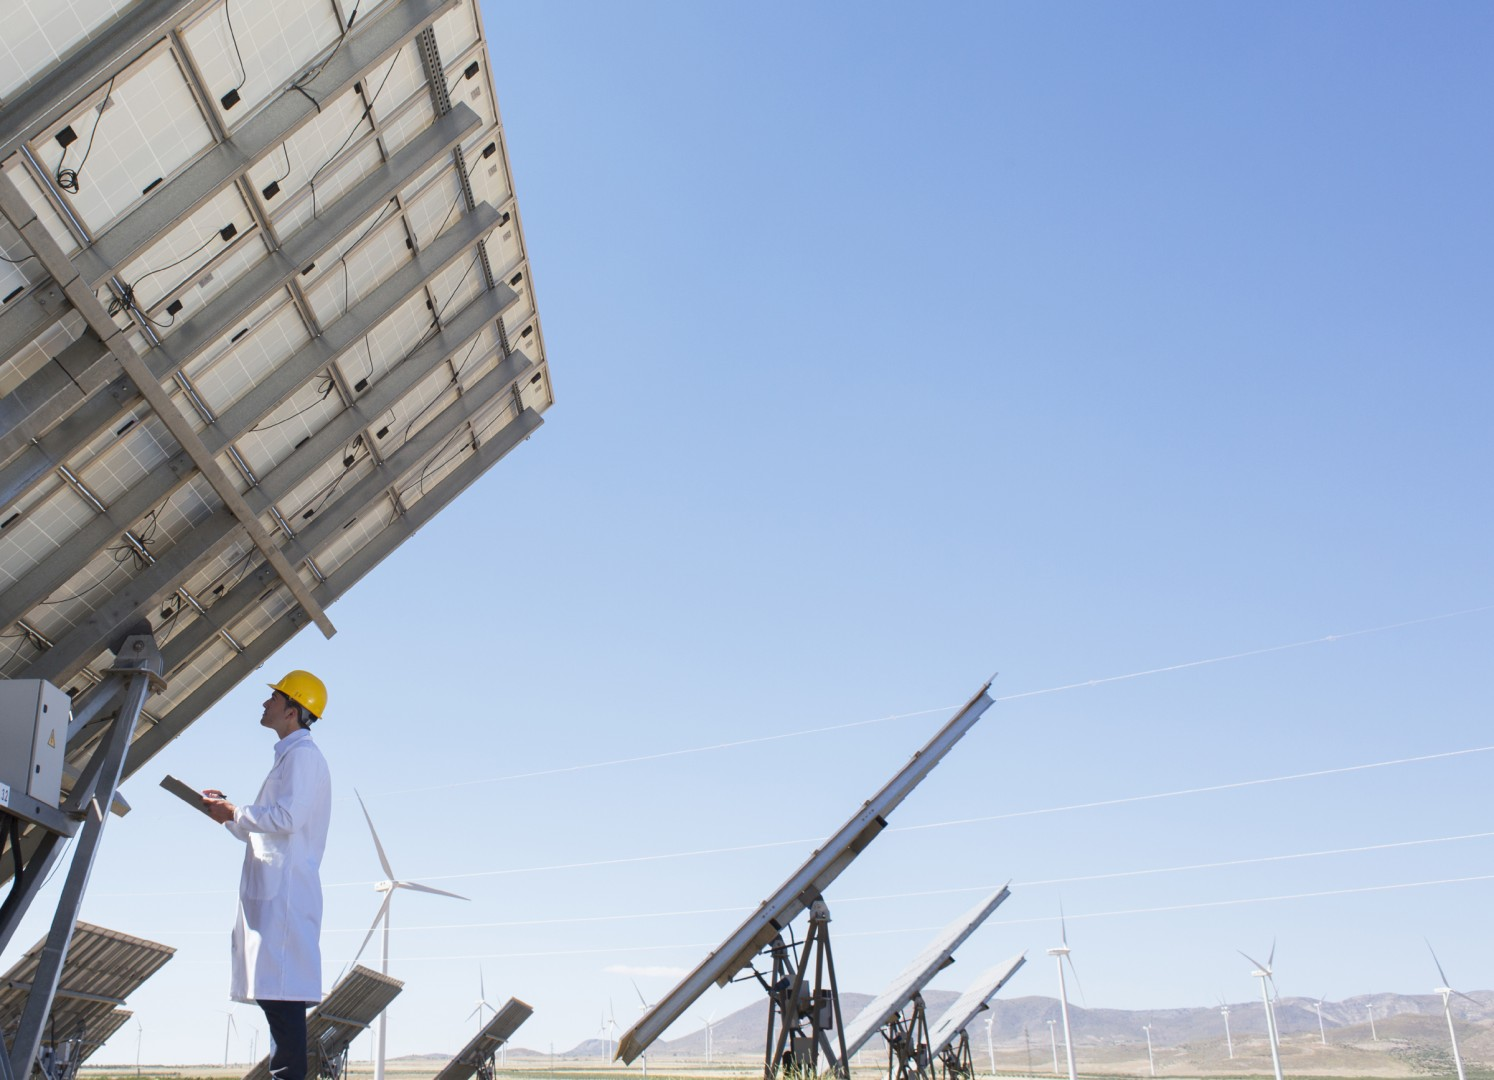 According to DuPont Photovoltaic and Advanced Materials latest 'Global PV Reliability Study' that focuses on field inspection and analysis of 6.5 million modules, 355 installations and 1.8GW of total power, PV backsheet material defects have increased by a significant 47% from the 2018 report. Image: DuPont